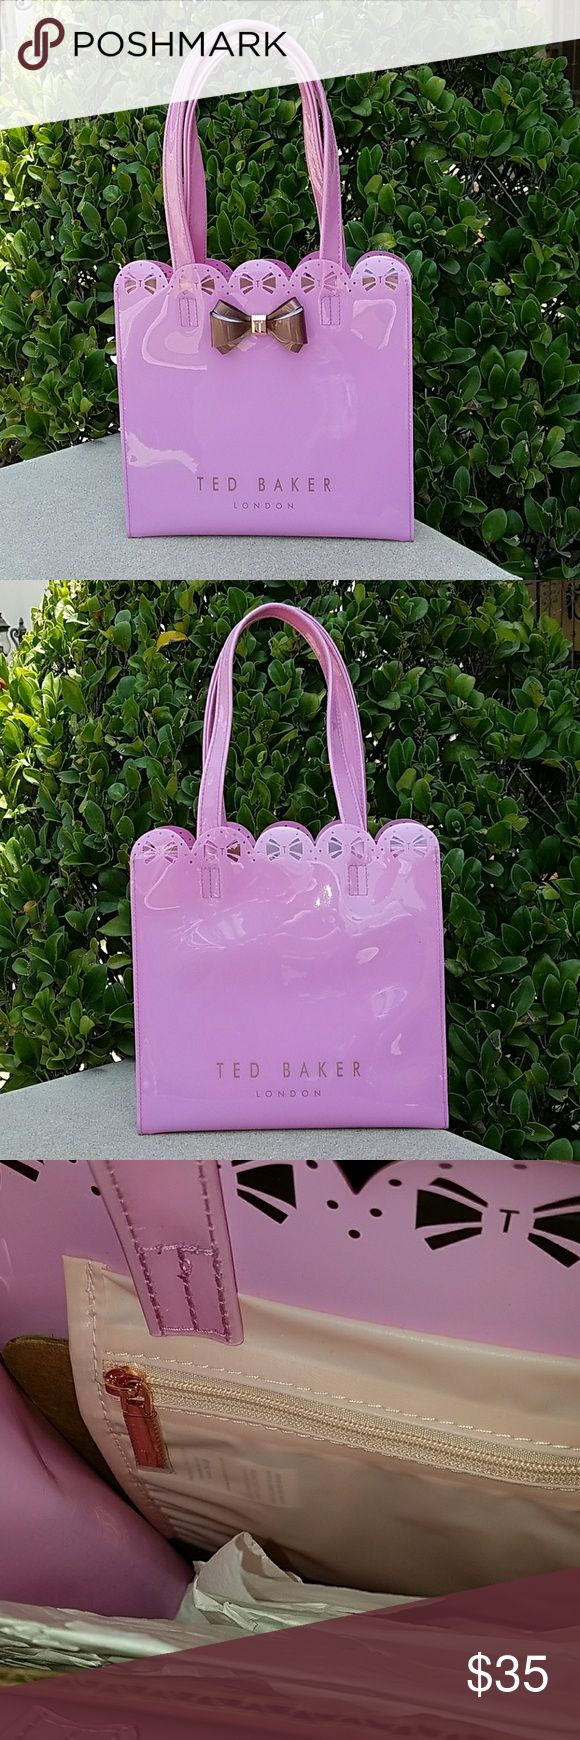 "Ted Baker Handbag Elegant Ted Baker handbag. This is a medium sized bag, measured at length 9 7/8 "", depth 9"" , excluding handles, and width 4 3/4"".  The bag is a glossy pink, rigid, with one internal pocket, pictured. The bag is brand new, unused, purchased directly from Ted Baker. Ted Baker London Bags"